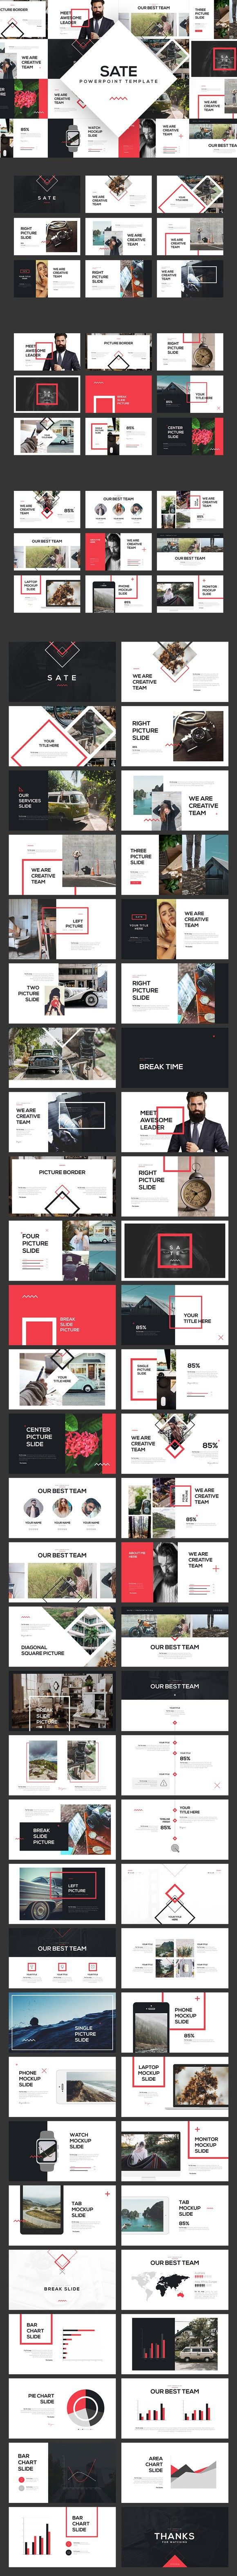 SATE PowerPoint Template | Presentation templates, Template and Layouts